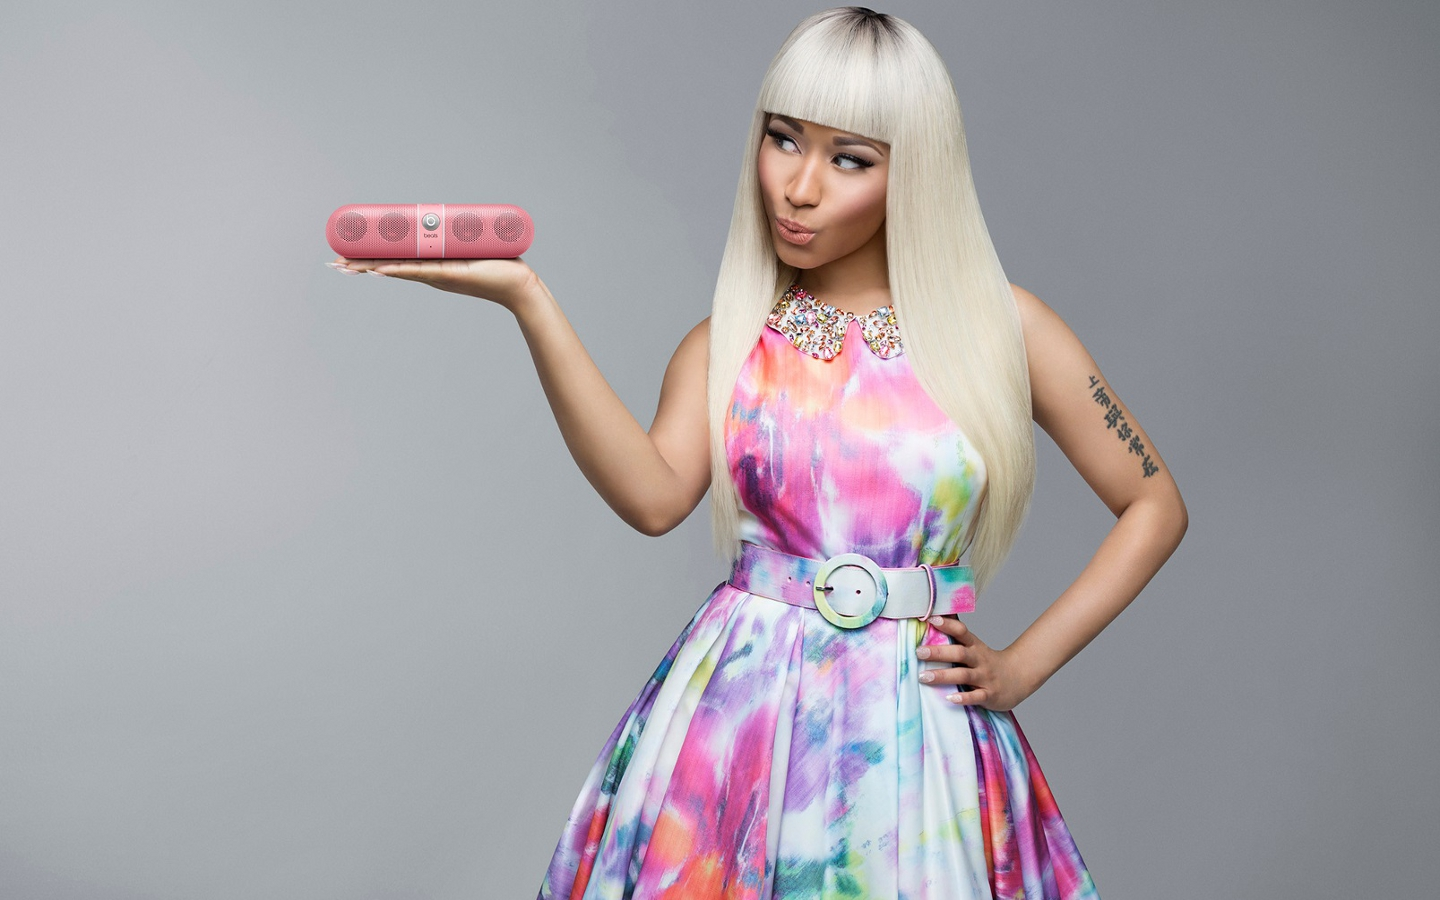 Pics Photos   Nicki Minaj Nicki Minaj Wallpaper 1440x900